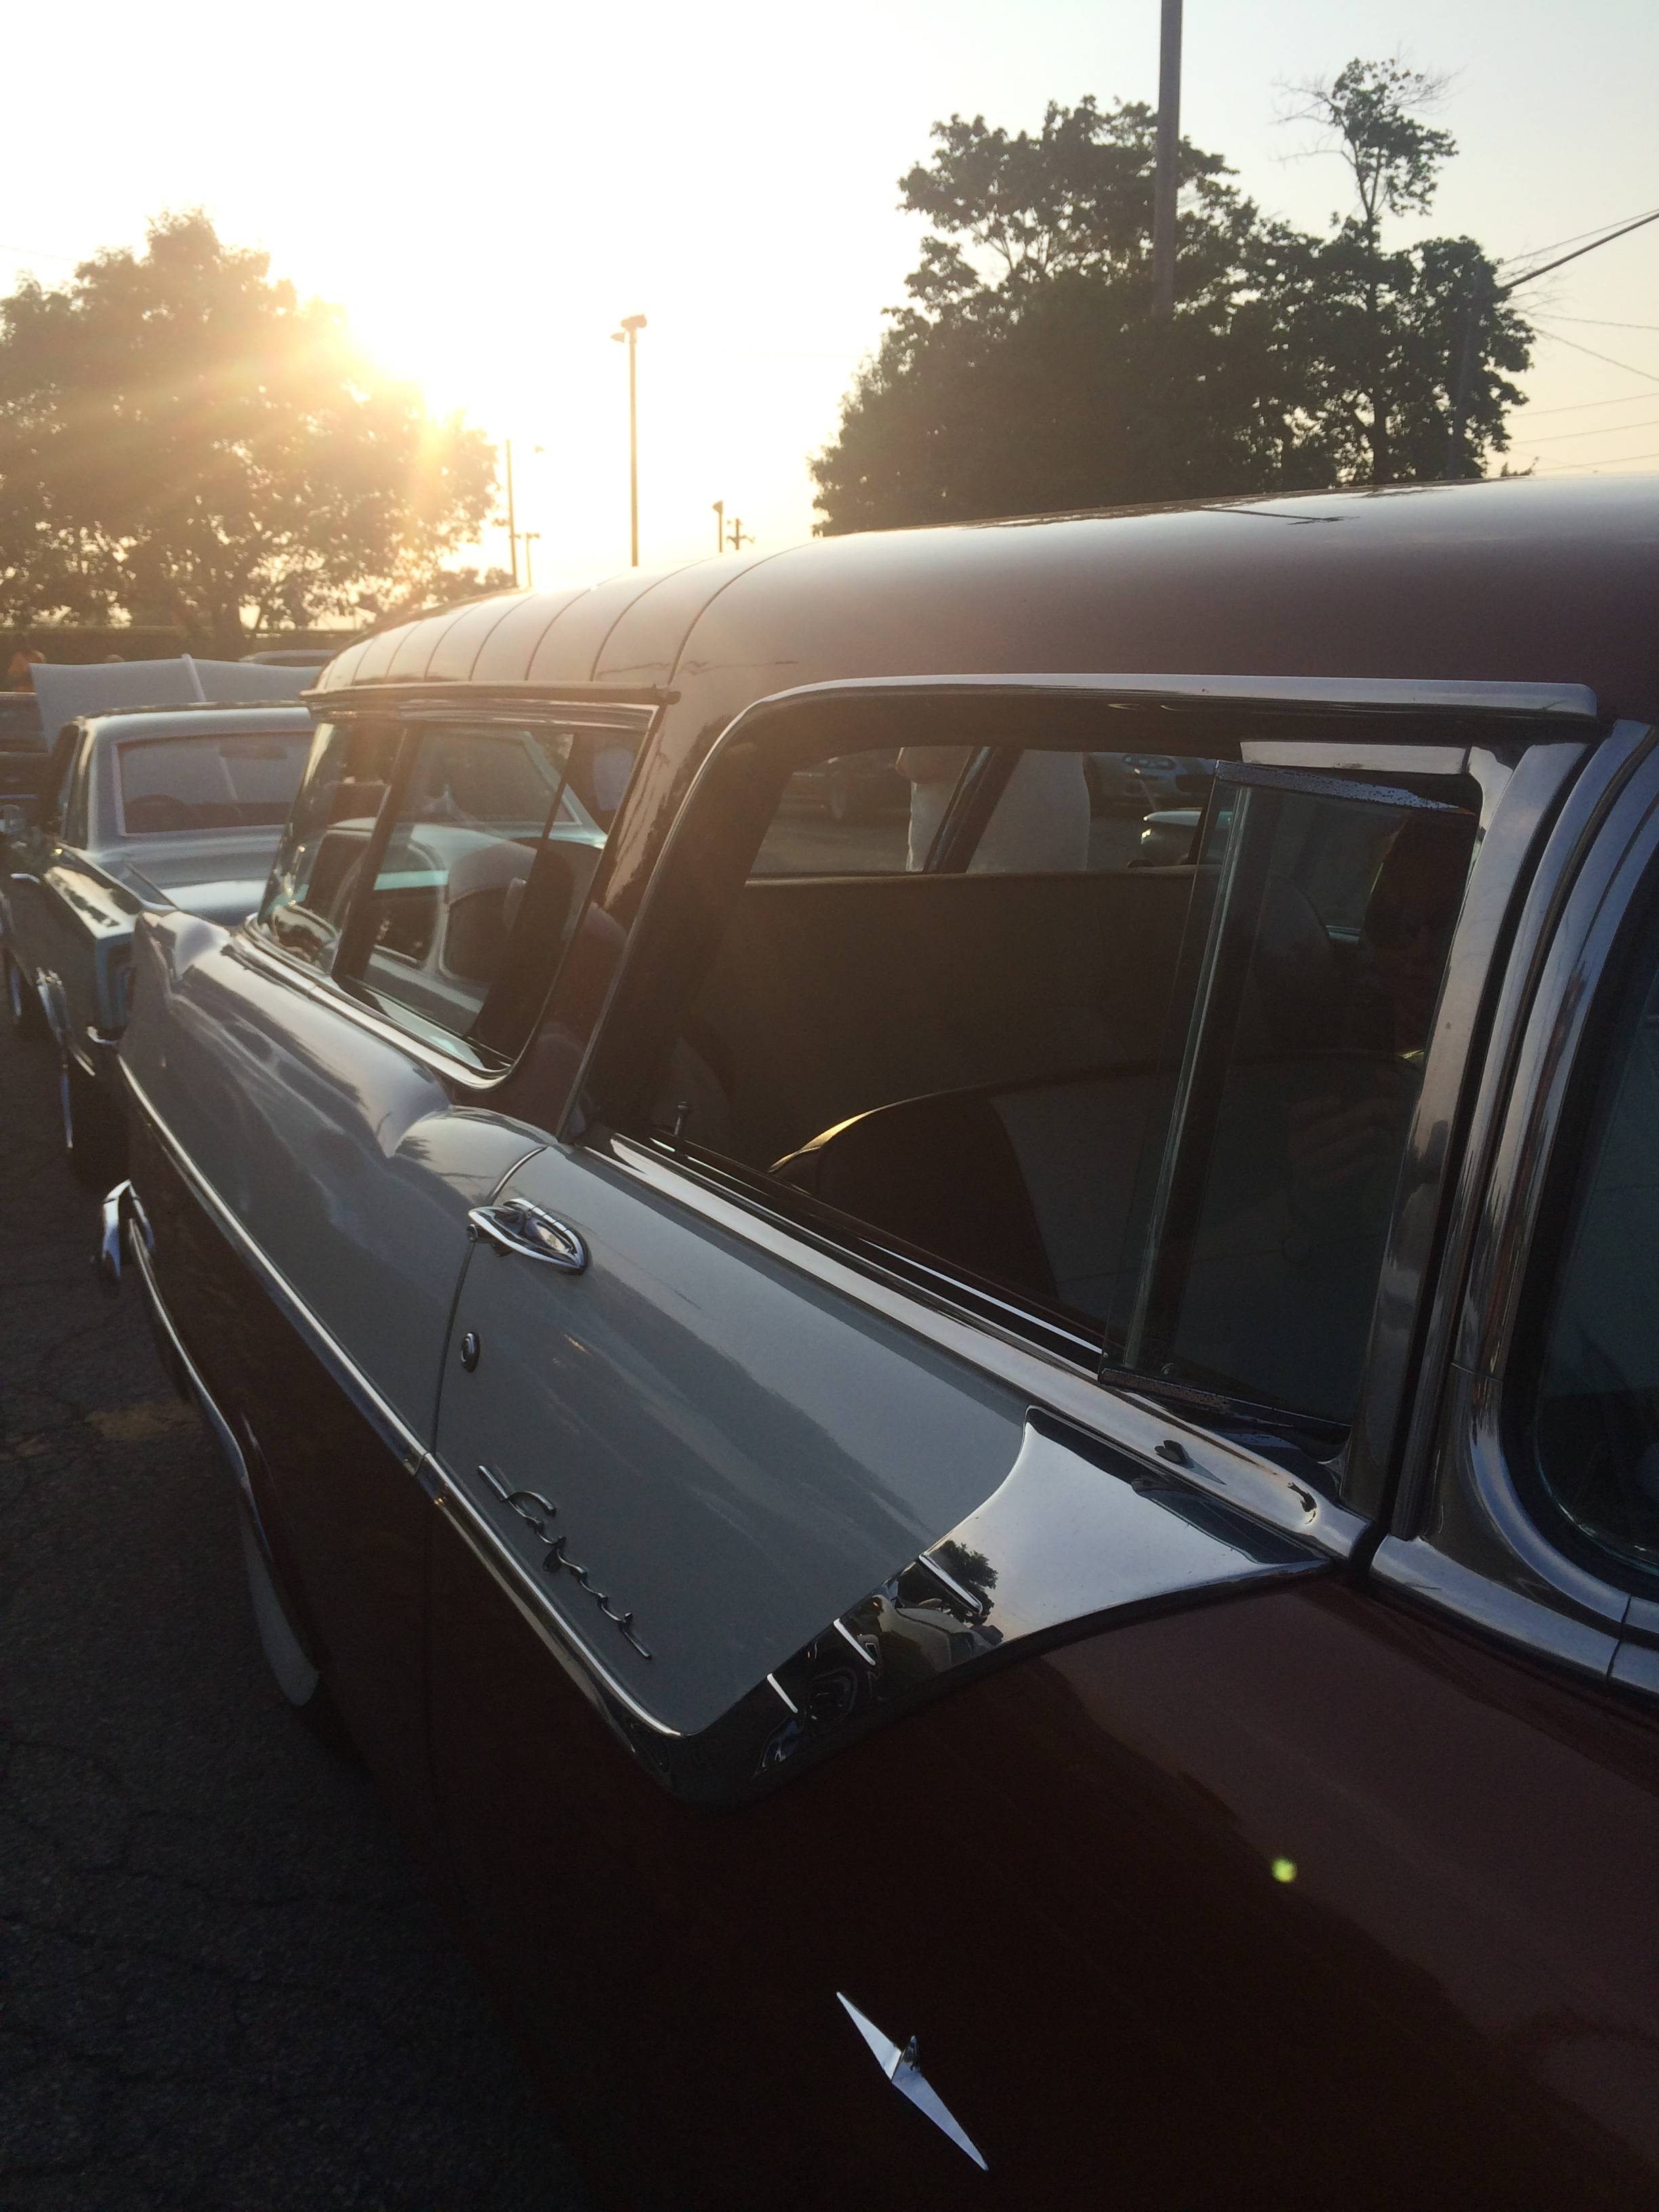 Car Show | Mayfield Heights, OH - Official Website